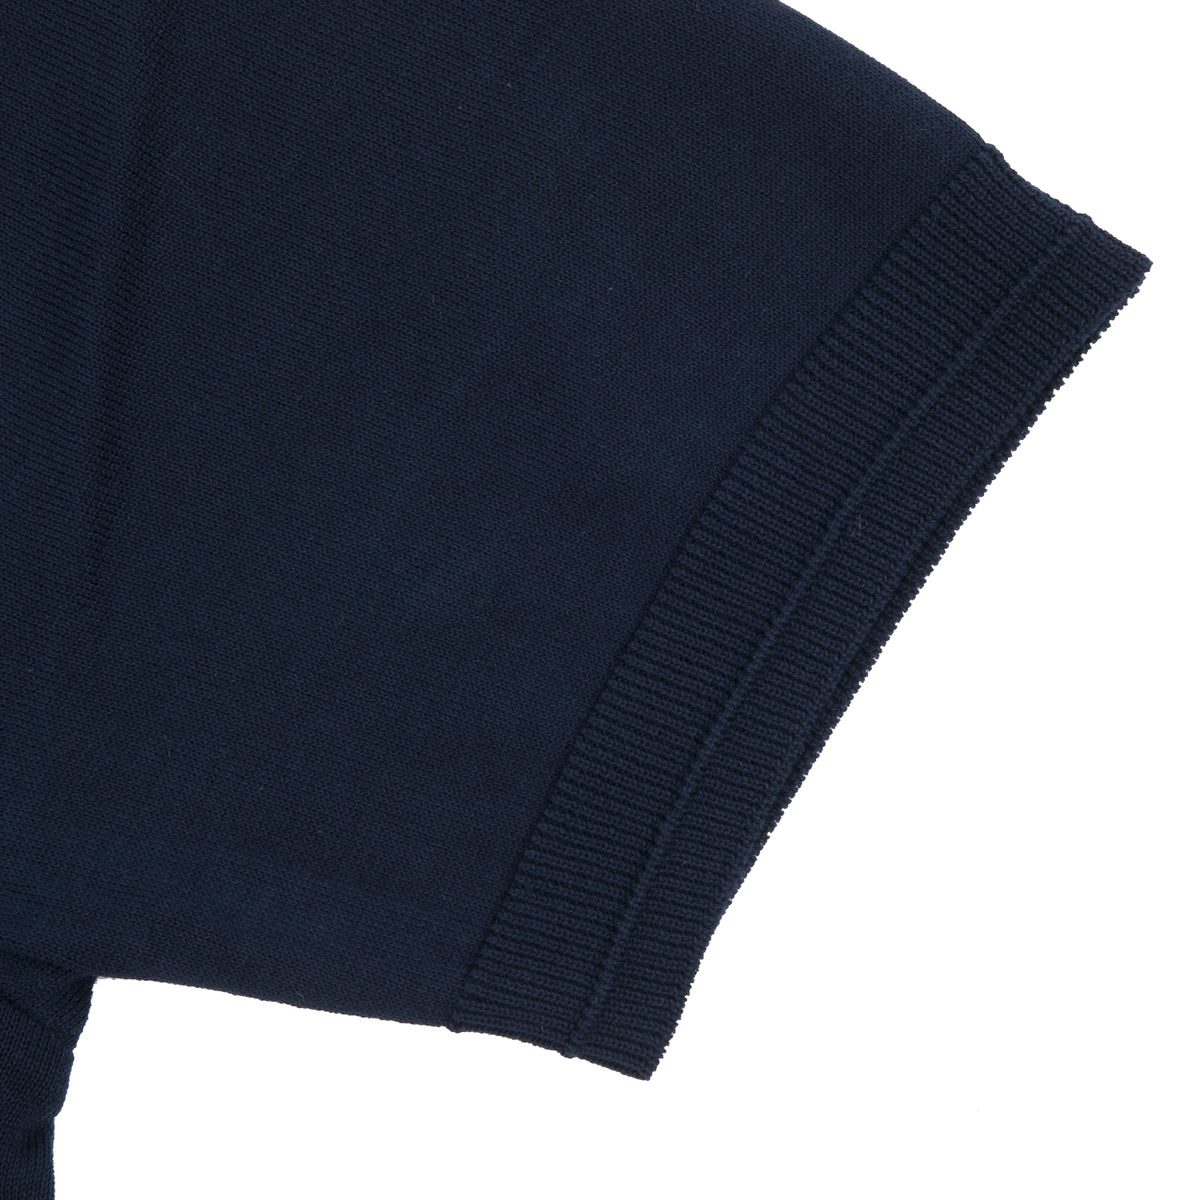 Fujito - Knit T-Shirt - Navy